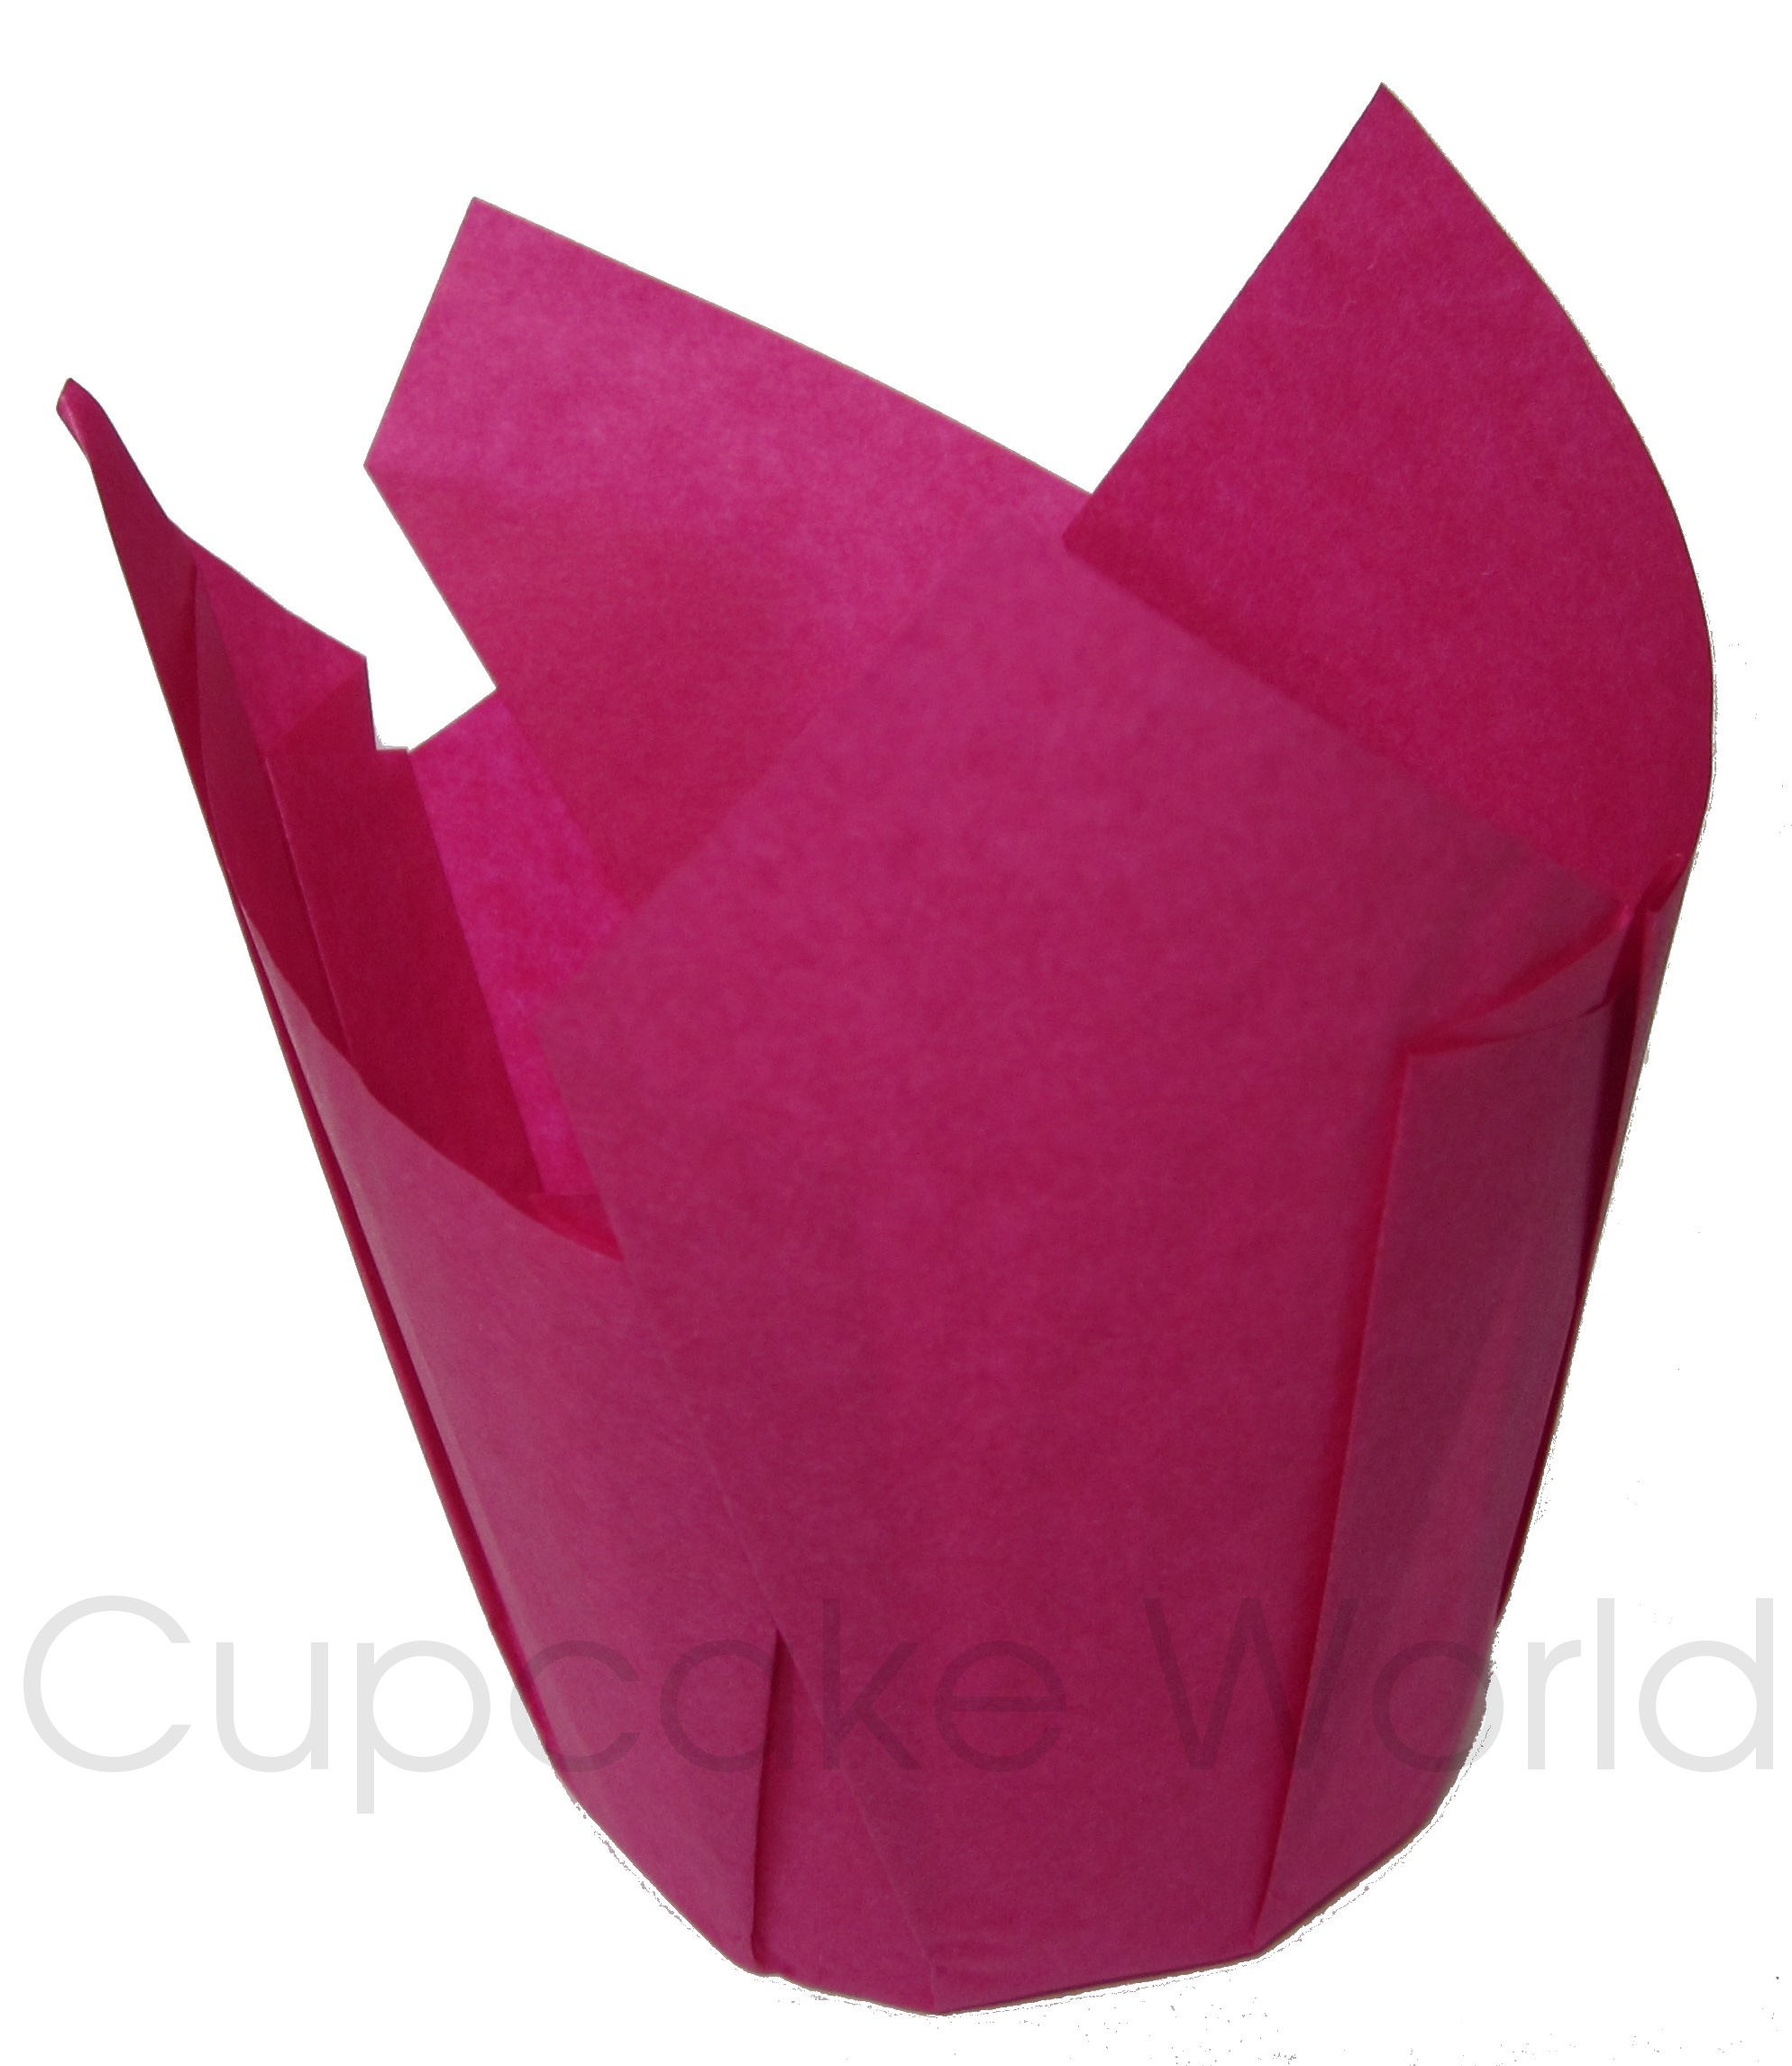 CAFE STYLE PAPER MUFFIN CUPCAKE CASES HOT PINK STD X 25